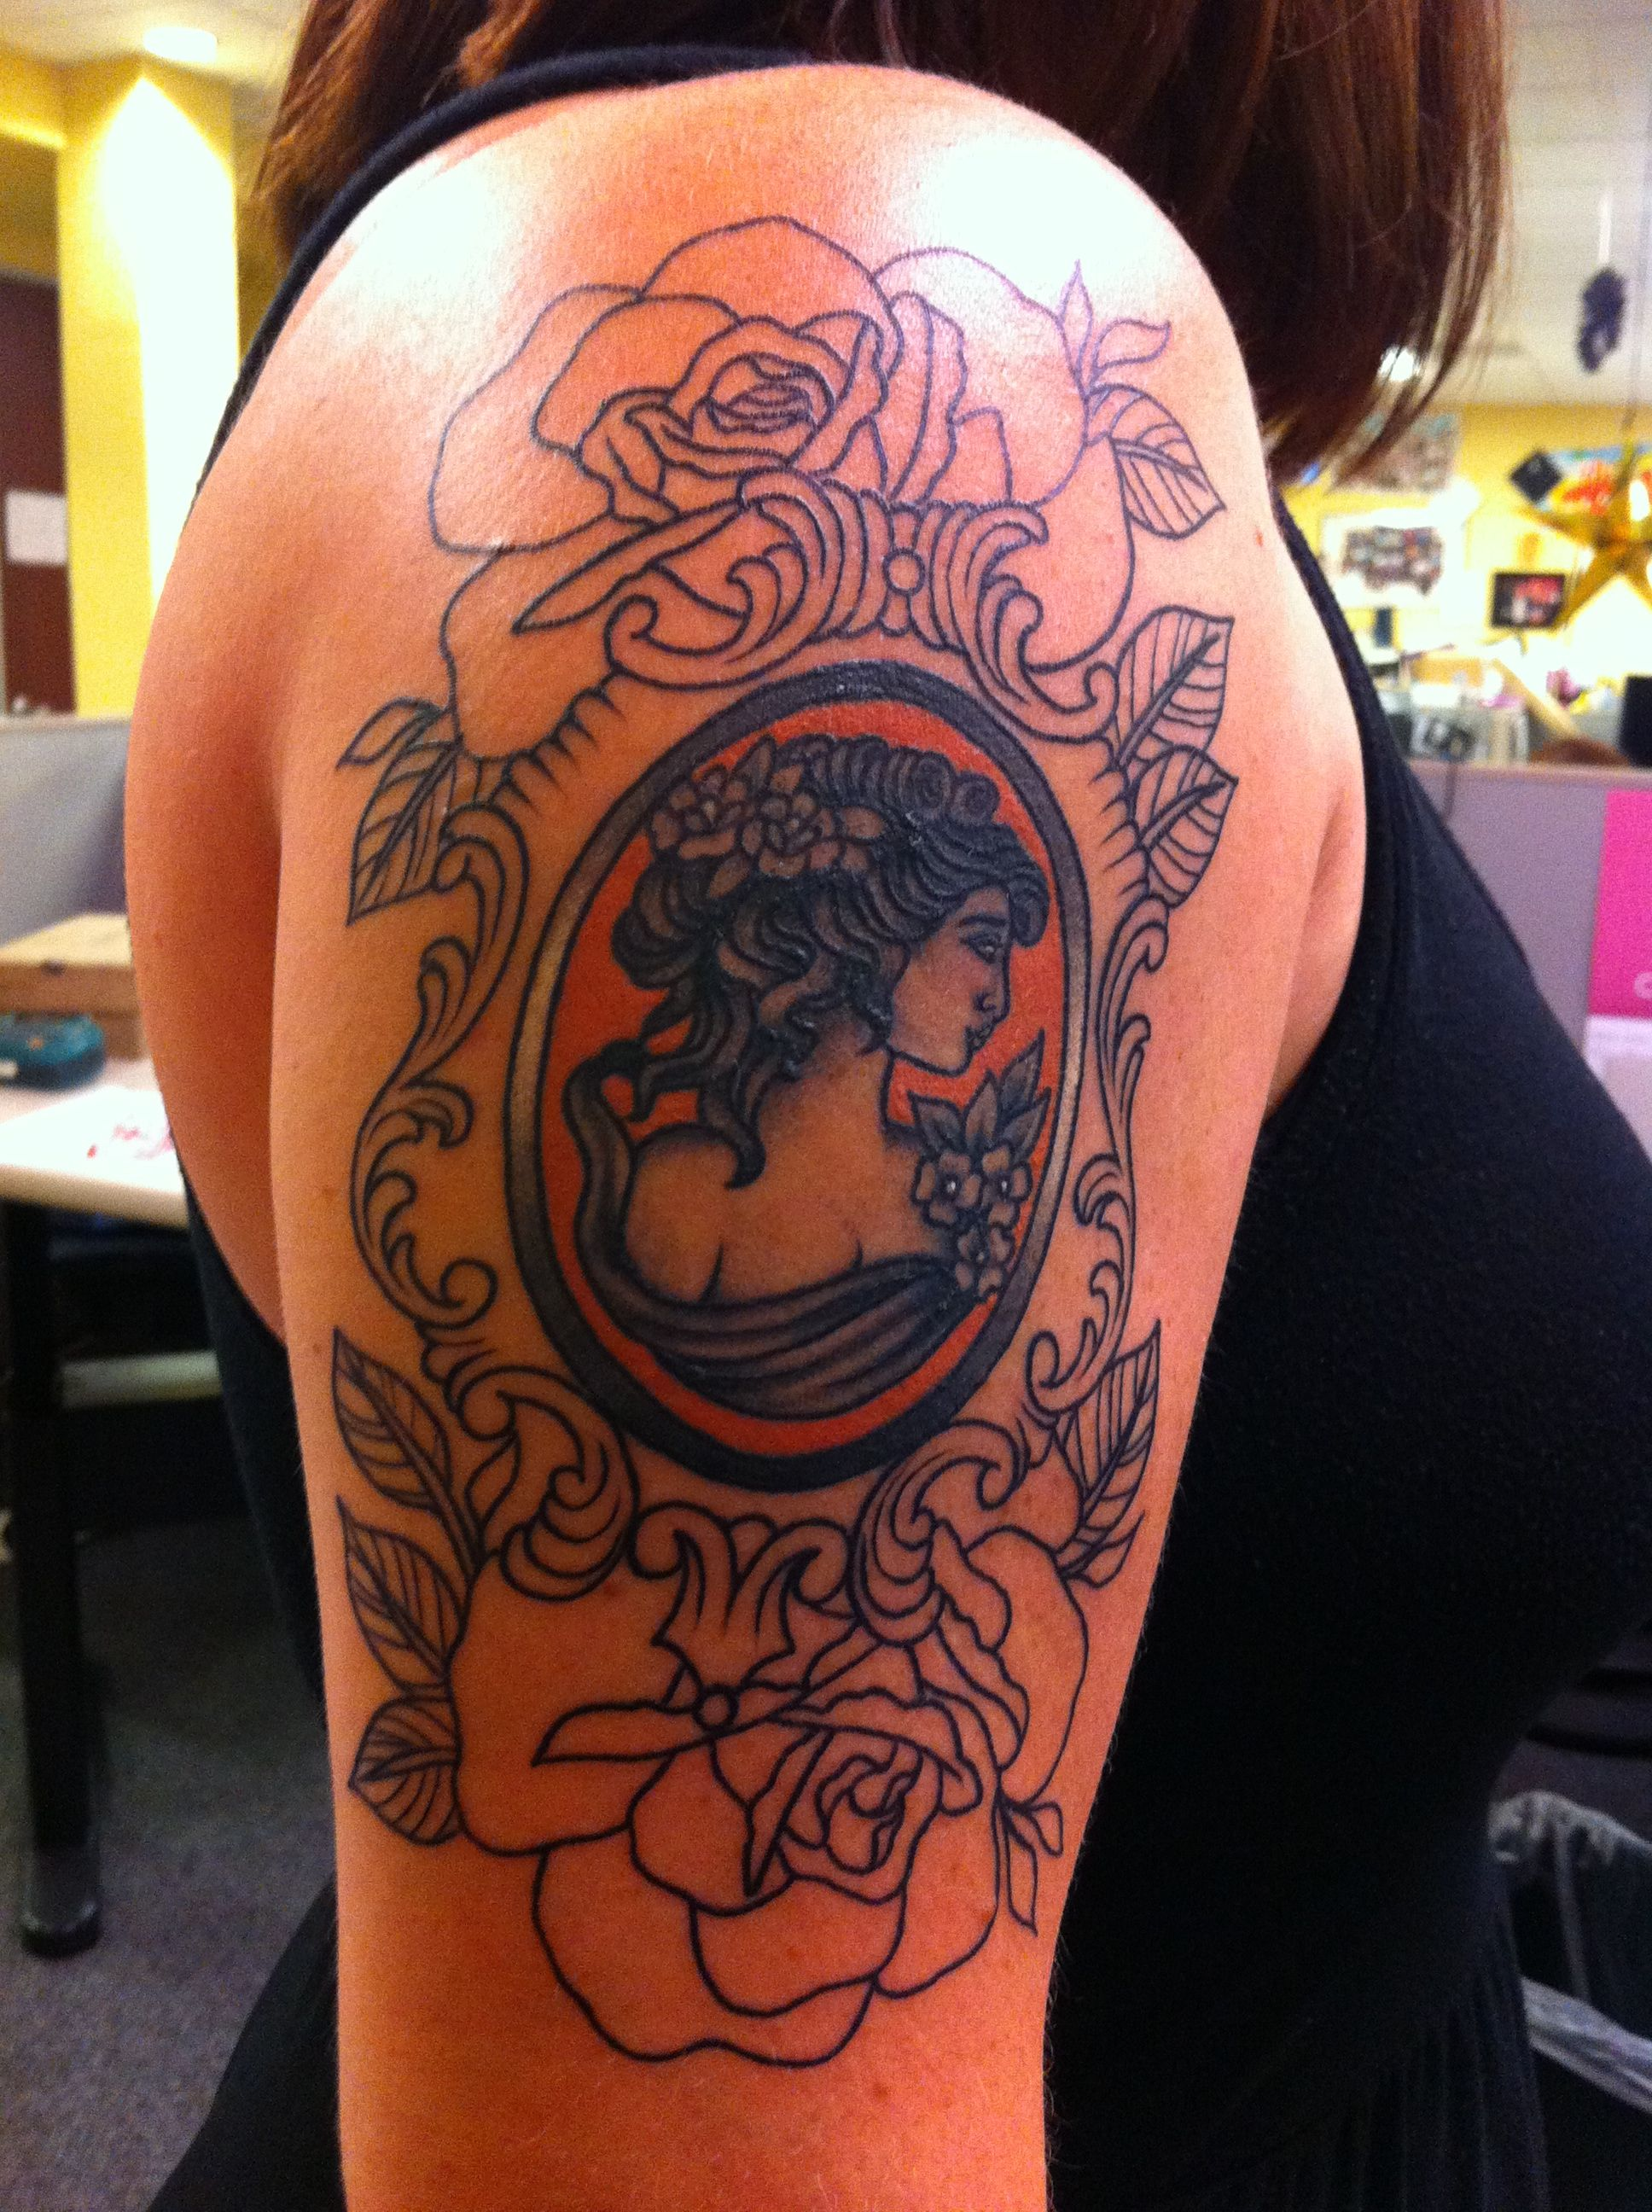 Cameo Tattoo Work In Progress But Love It Cameo Ideas And Designs